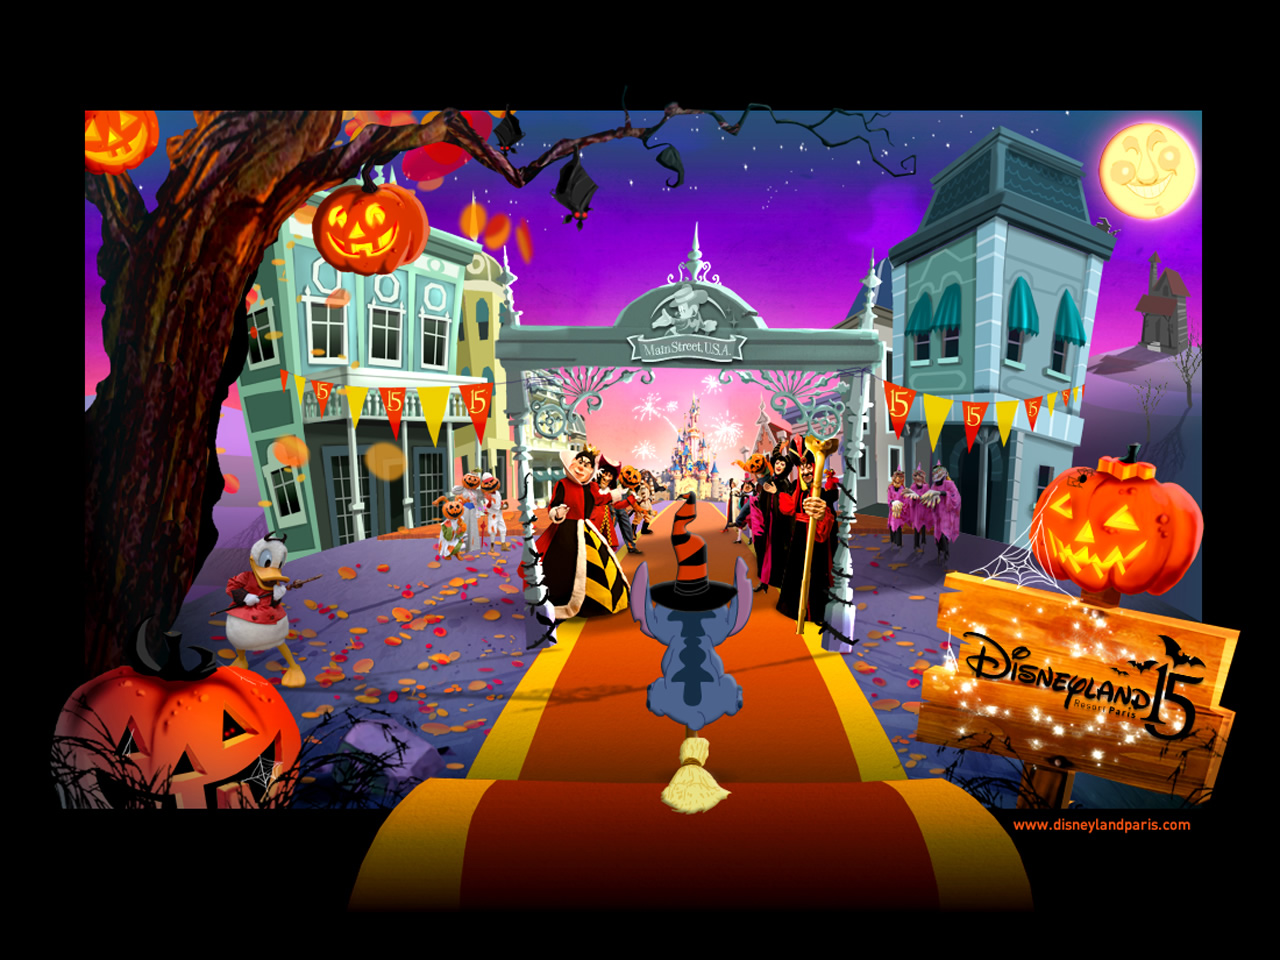 ... Halloween 2012 wallpaper for Disney's fan | Wallpaper for holiday